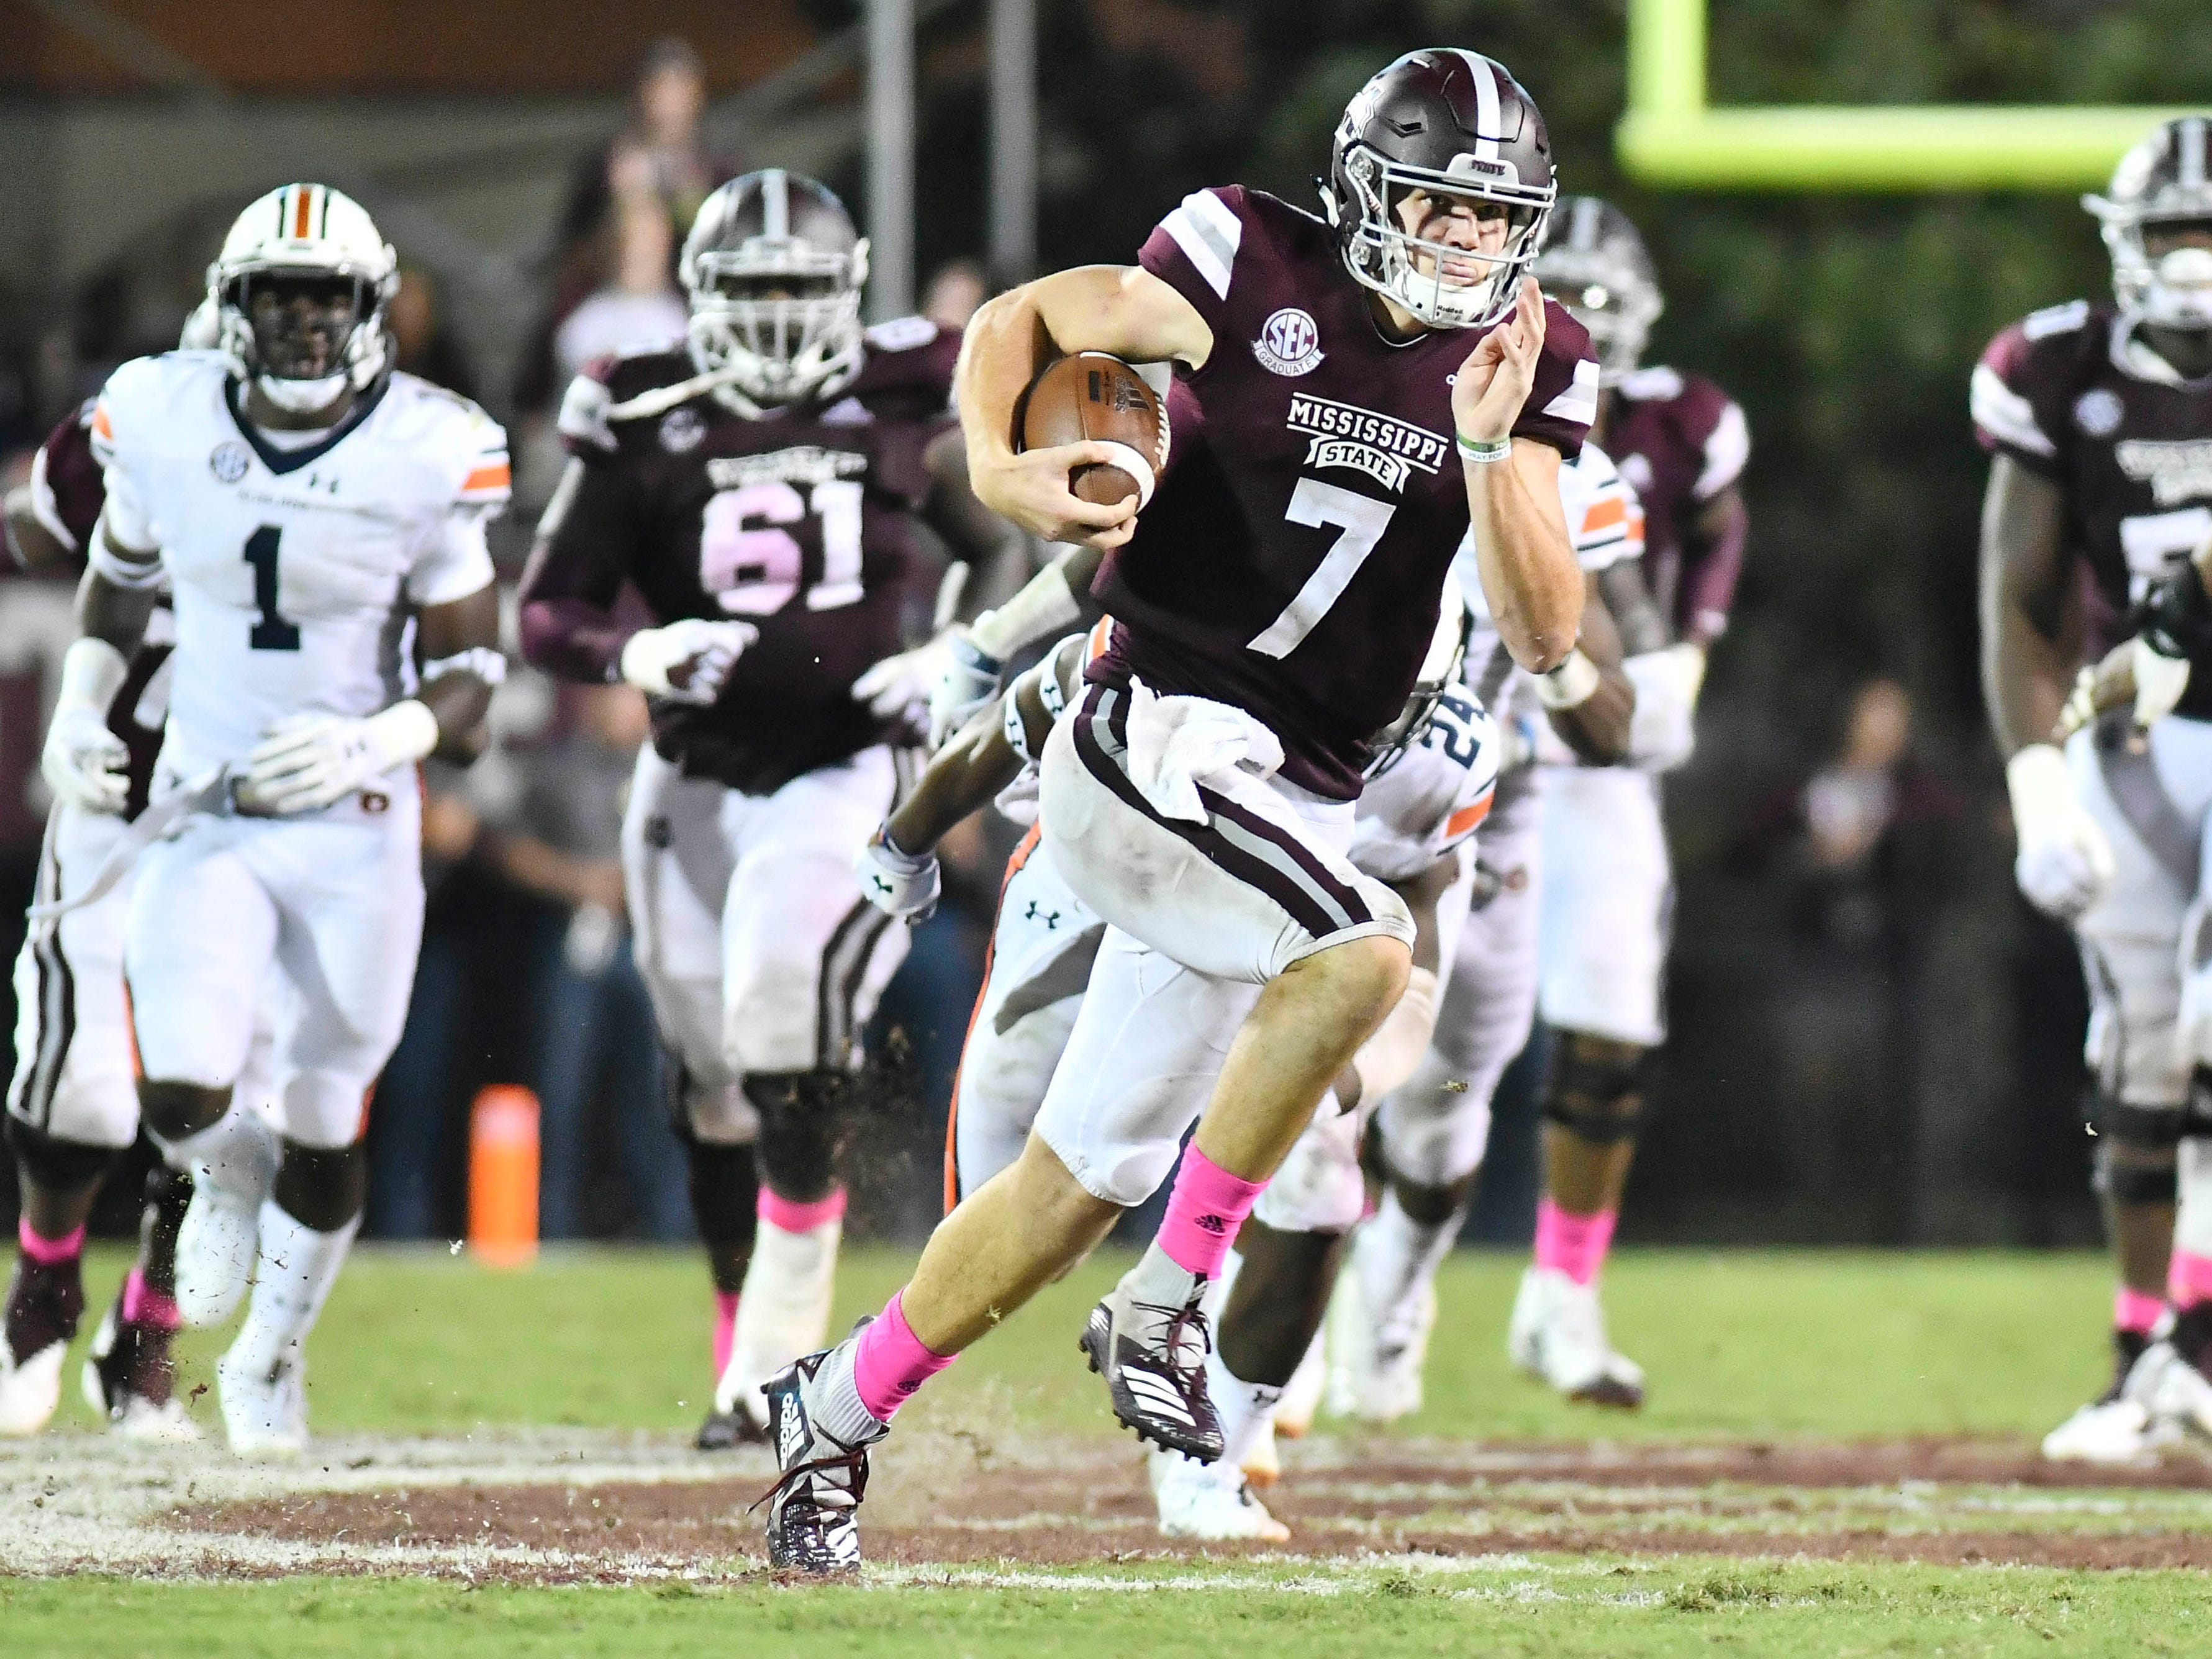 The importance that Nick Fitzgerald plays to Mississippi State's offense is akin to what Tim Tebow meant to Florida years ago. The senior is the Bulldogs' leading rusher, with more than 1,000 yards this season.